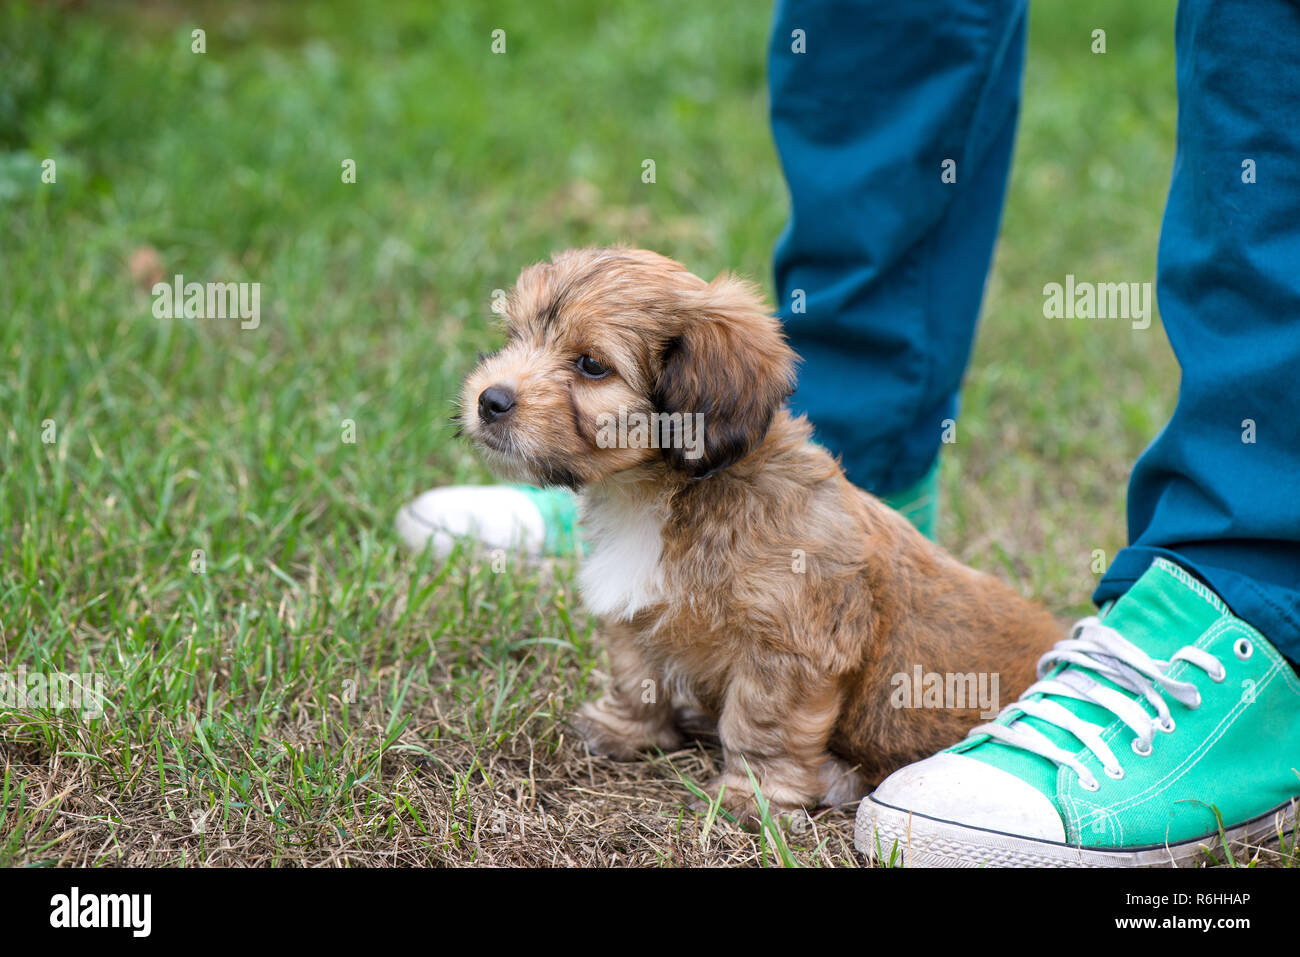 Little, lovely, fluffy, cute brown puppy playing outdoors with owner, obediently sitting. Happy dog in the park or garden on green background. Concept - Stock Image